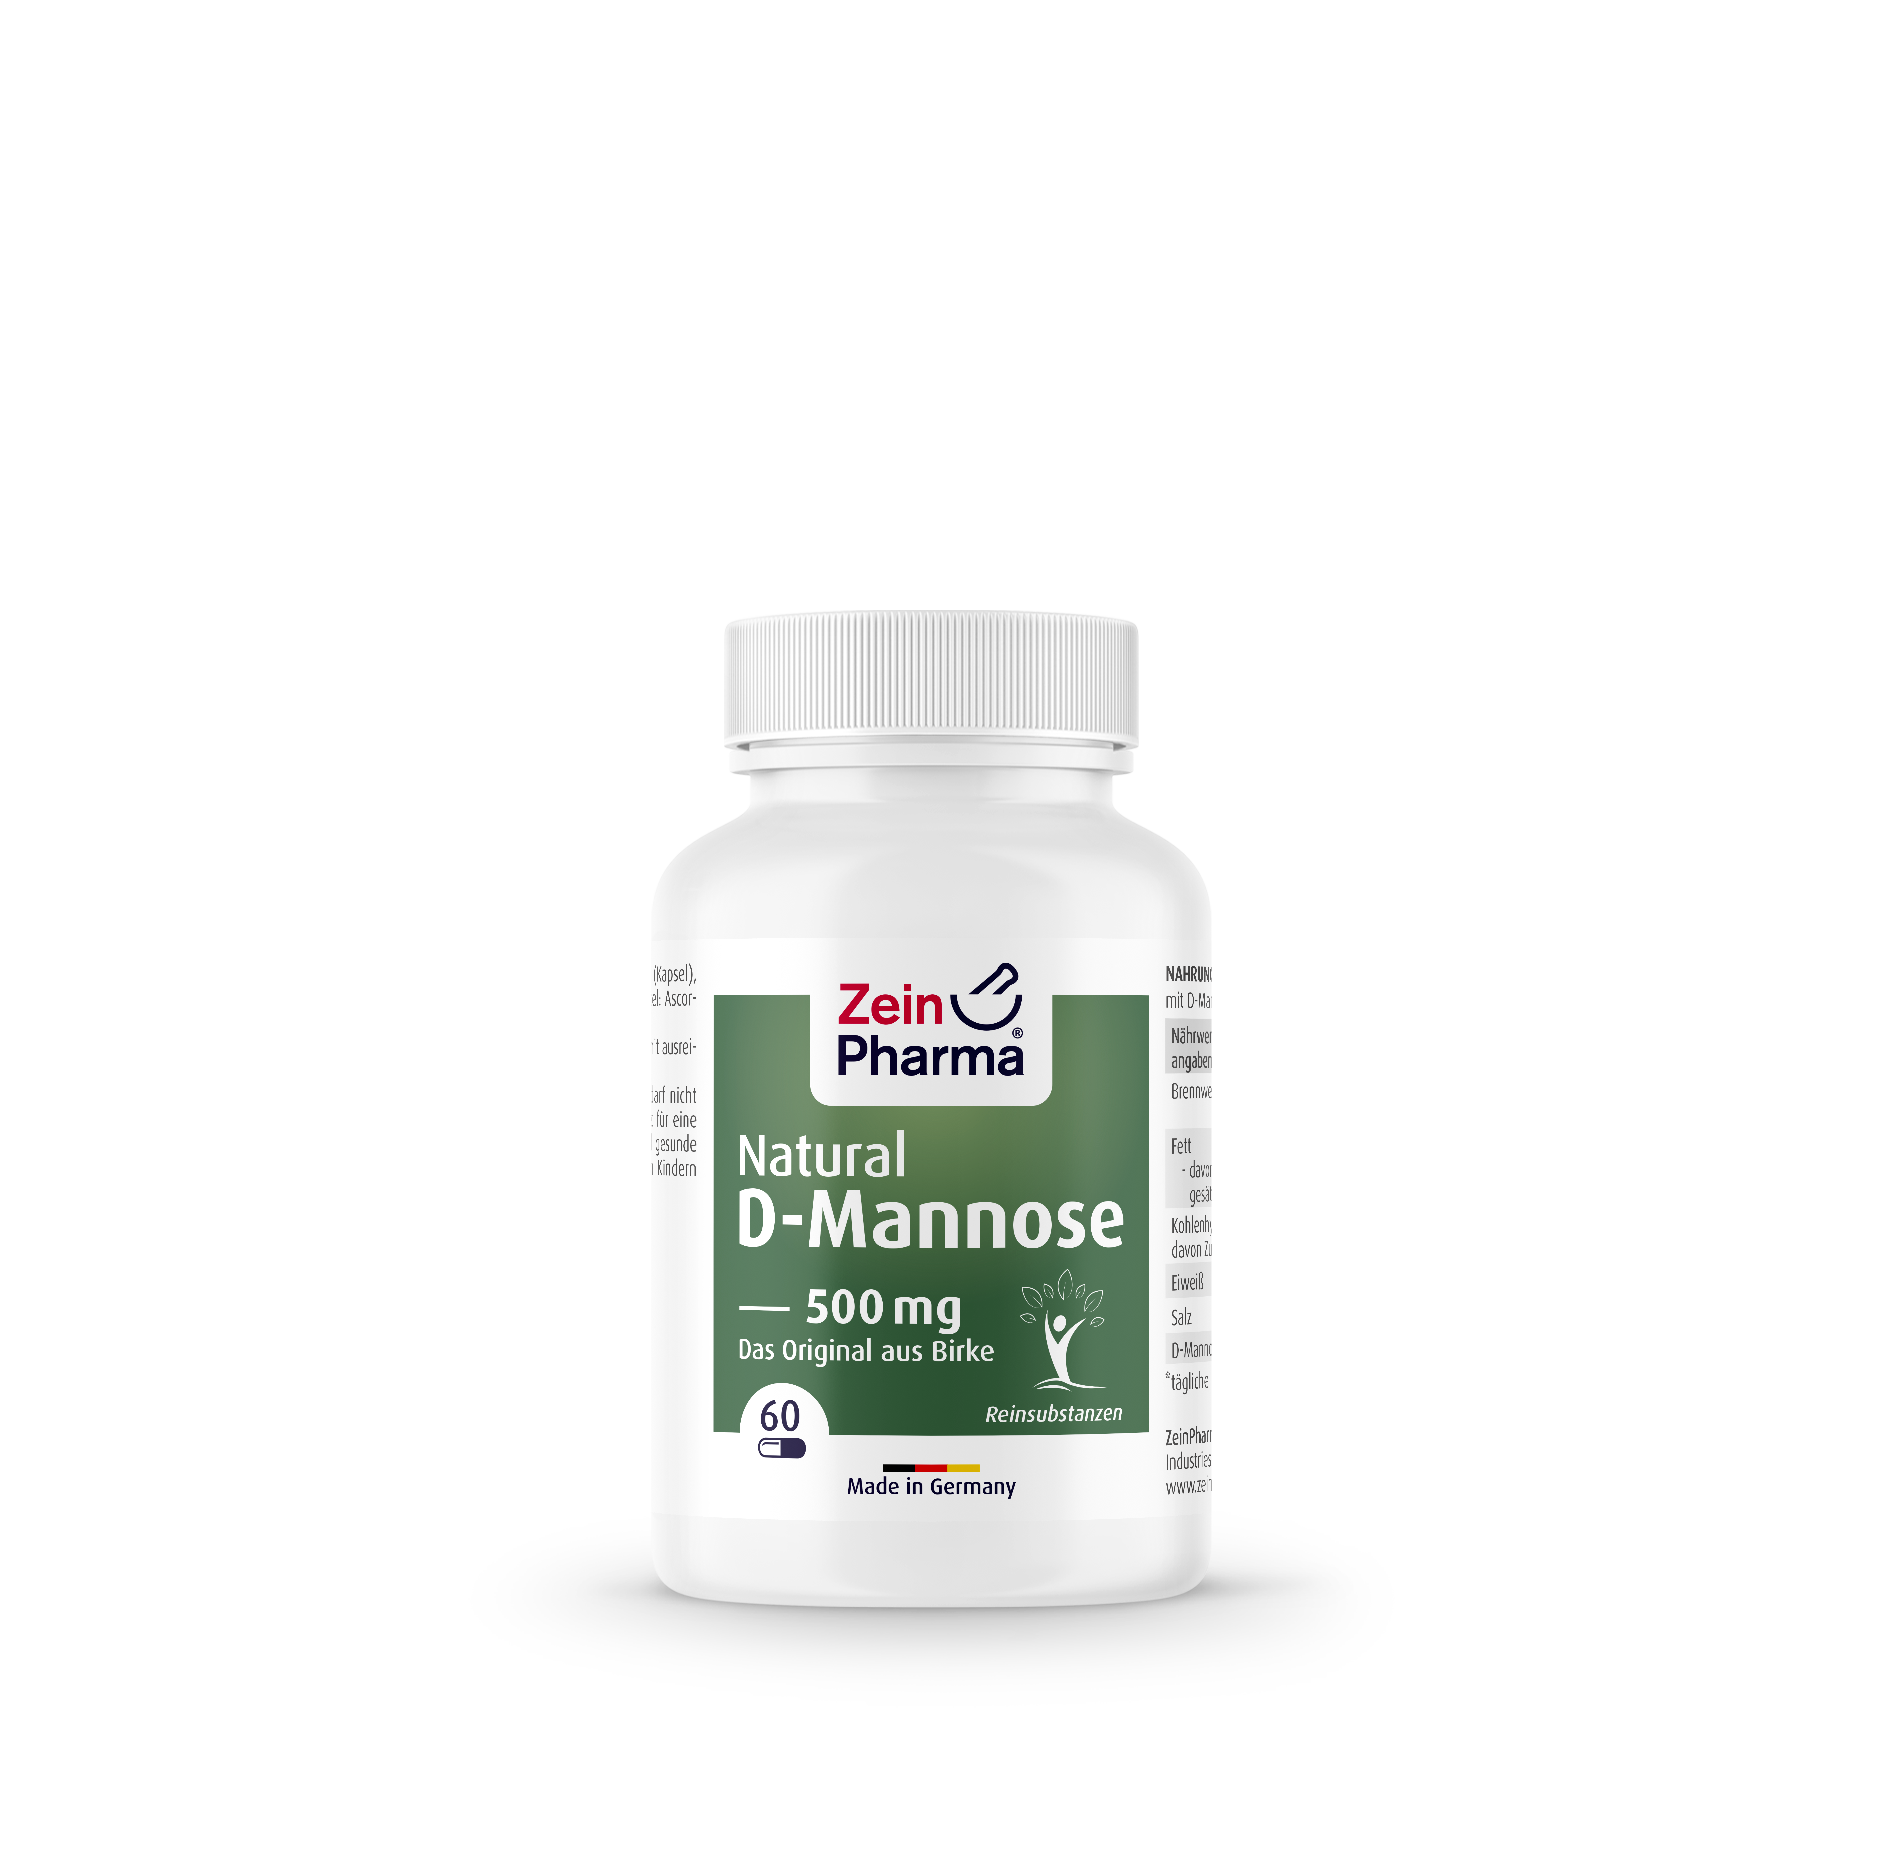 Natural D-Mannose 500 mg